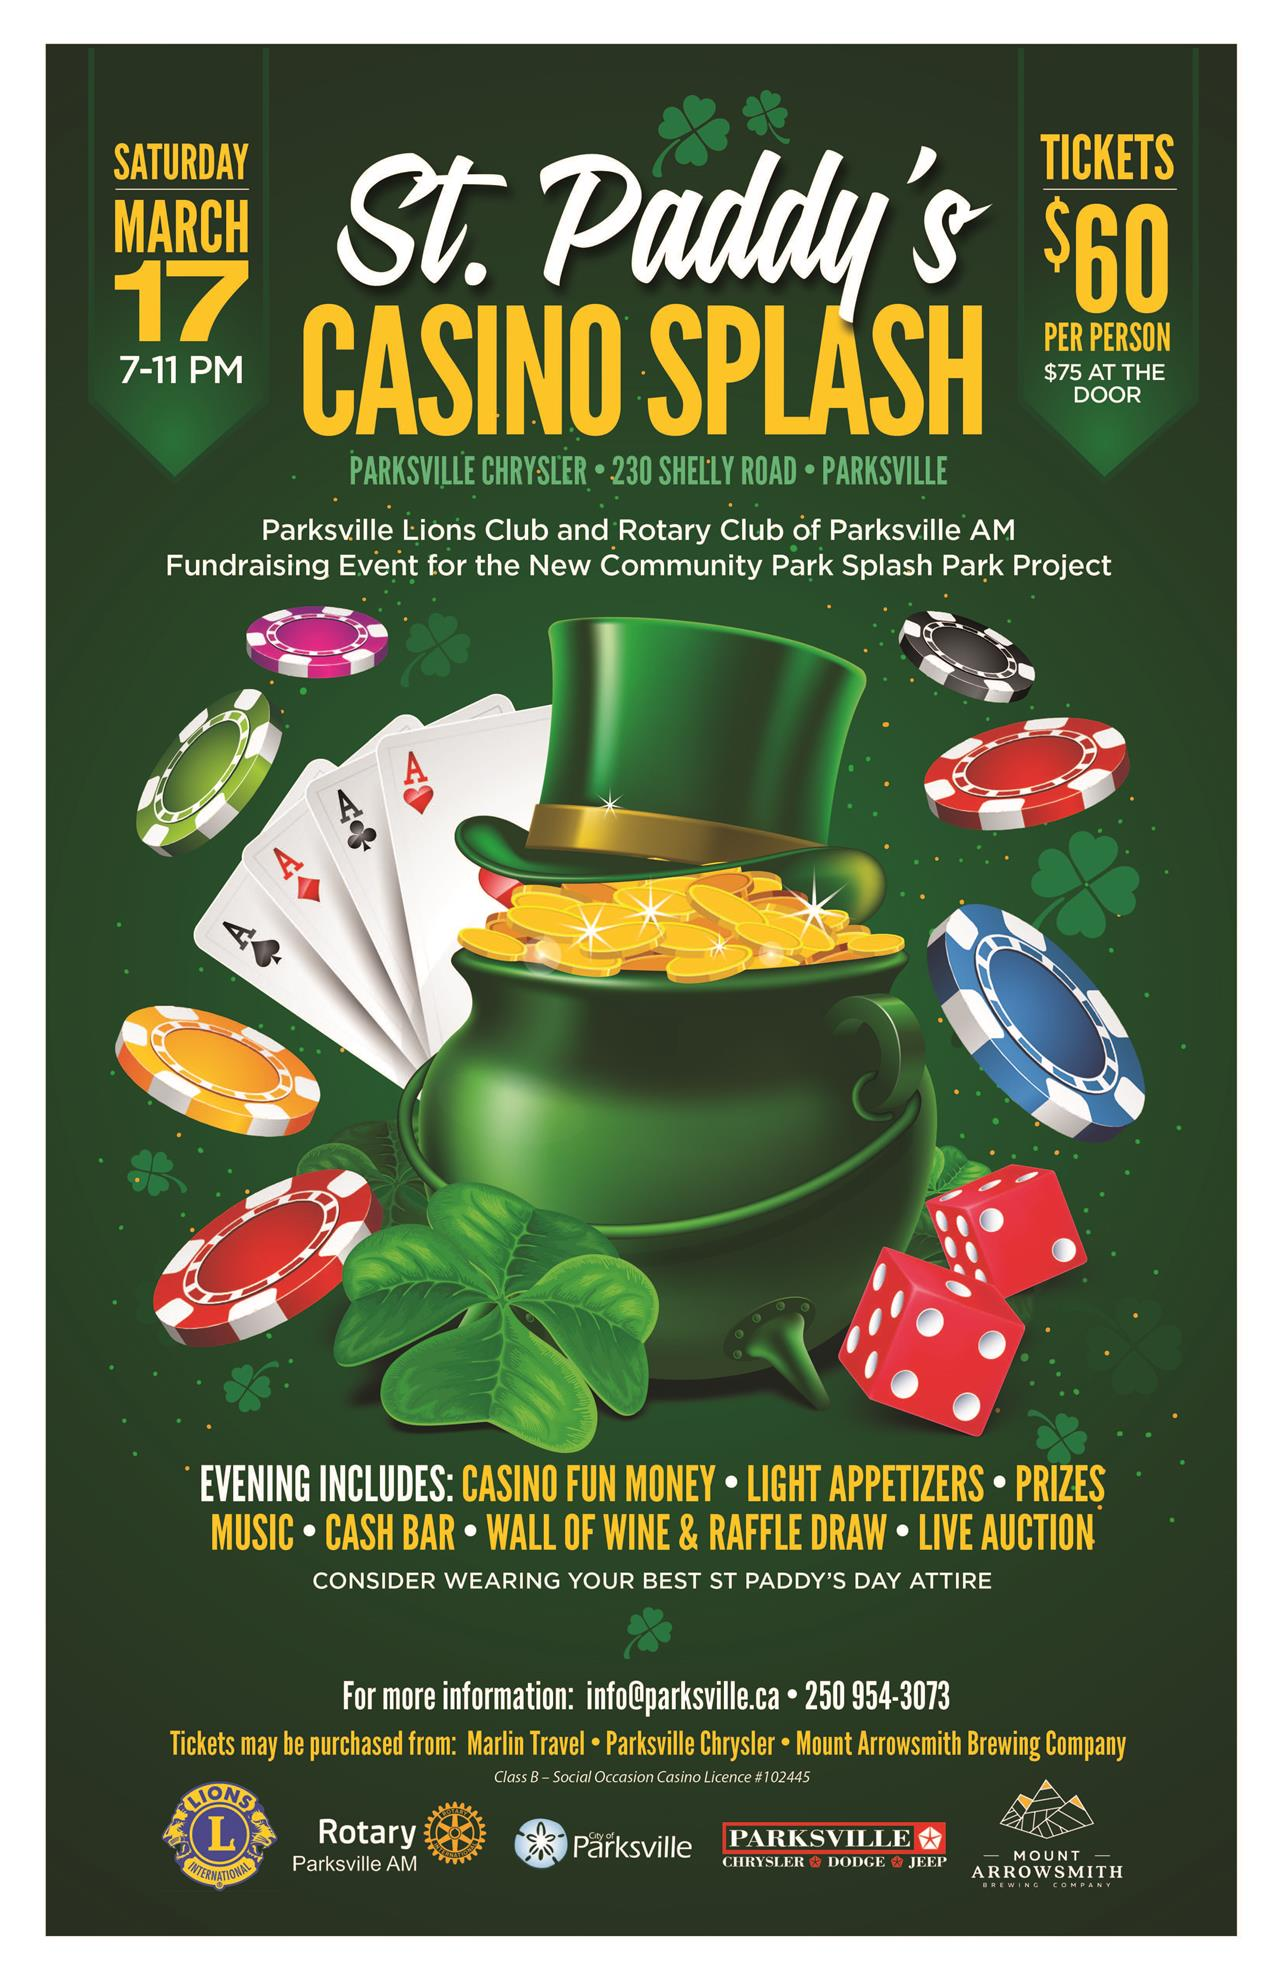 Stories Rotary Club Of Parksville Am Marlin Model 9 Camp Carbine Schematic Car Tuning St Paddys Casino Splash Fundraising Event March 17